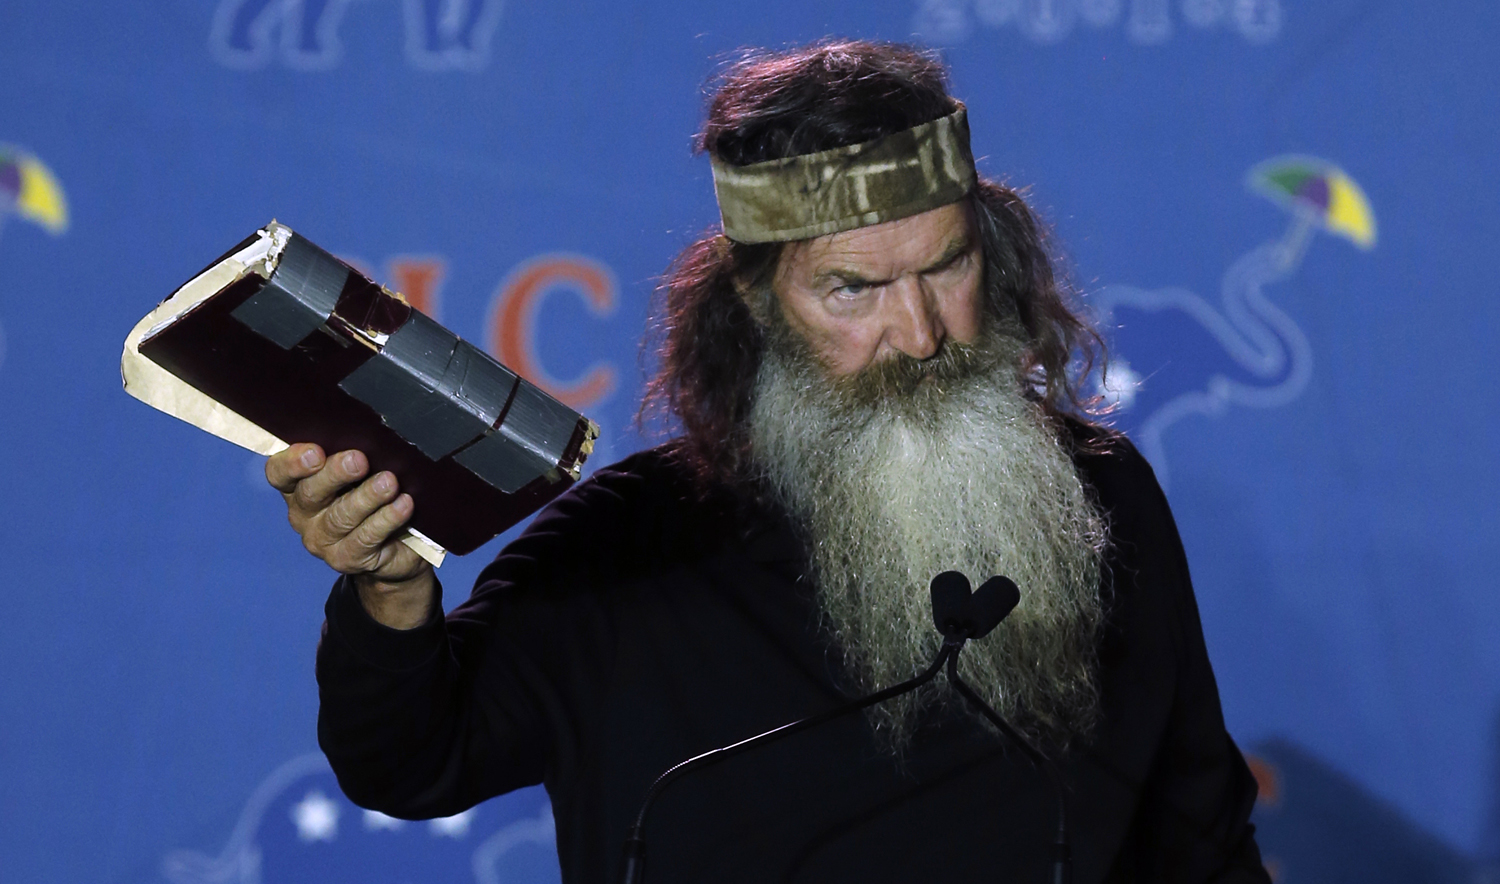 Phil Robertson addresses the Republican Leadership Conference in New Orleans, La. on Thursday, May 29, 2014.